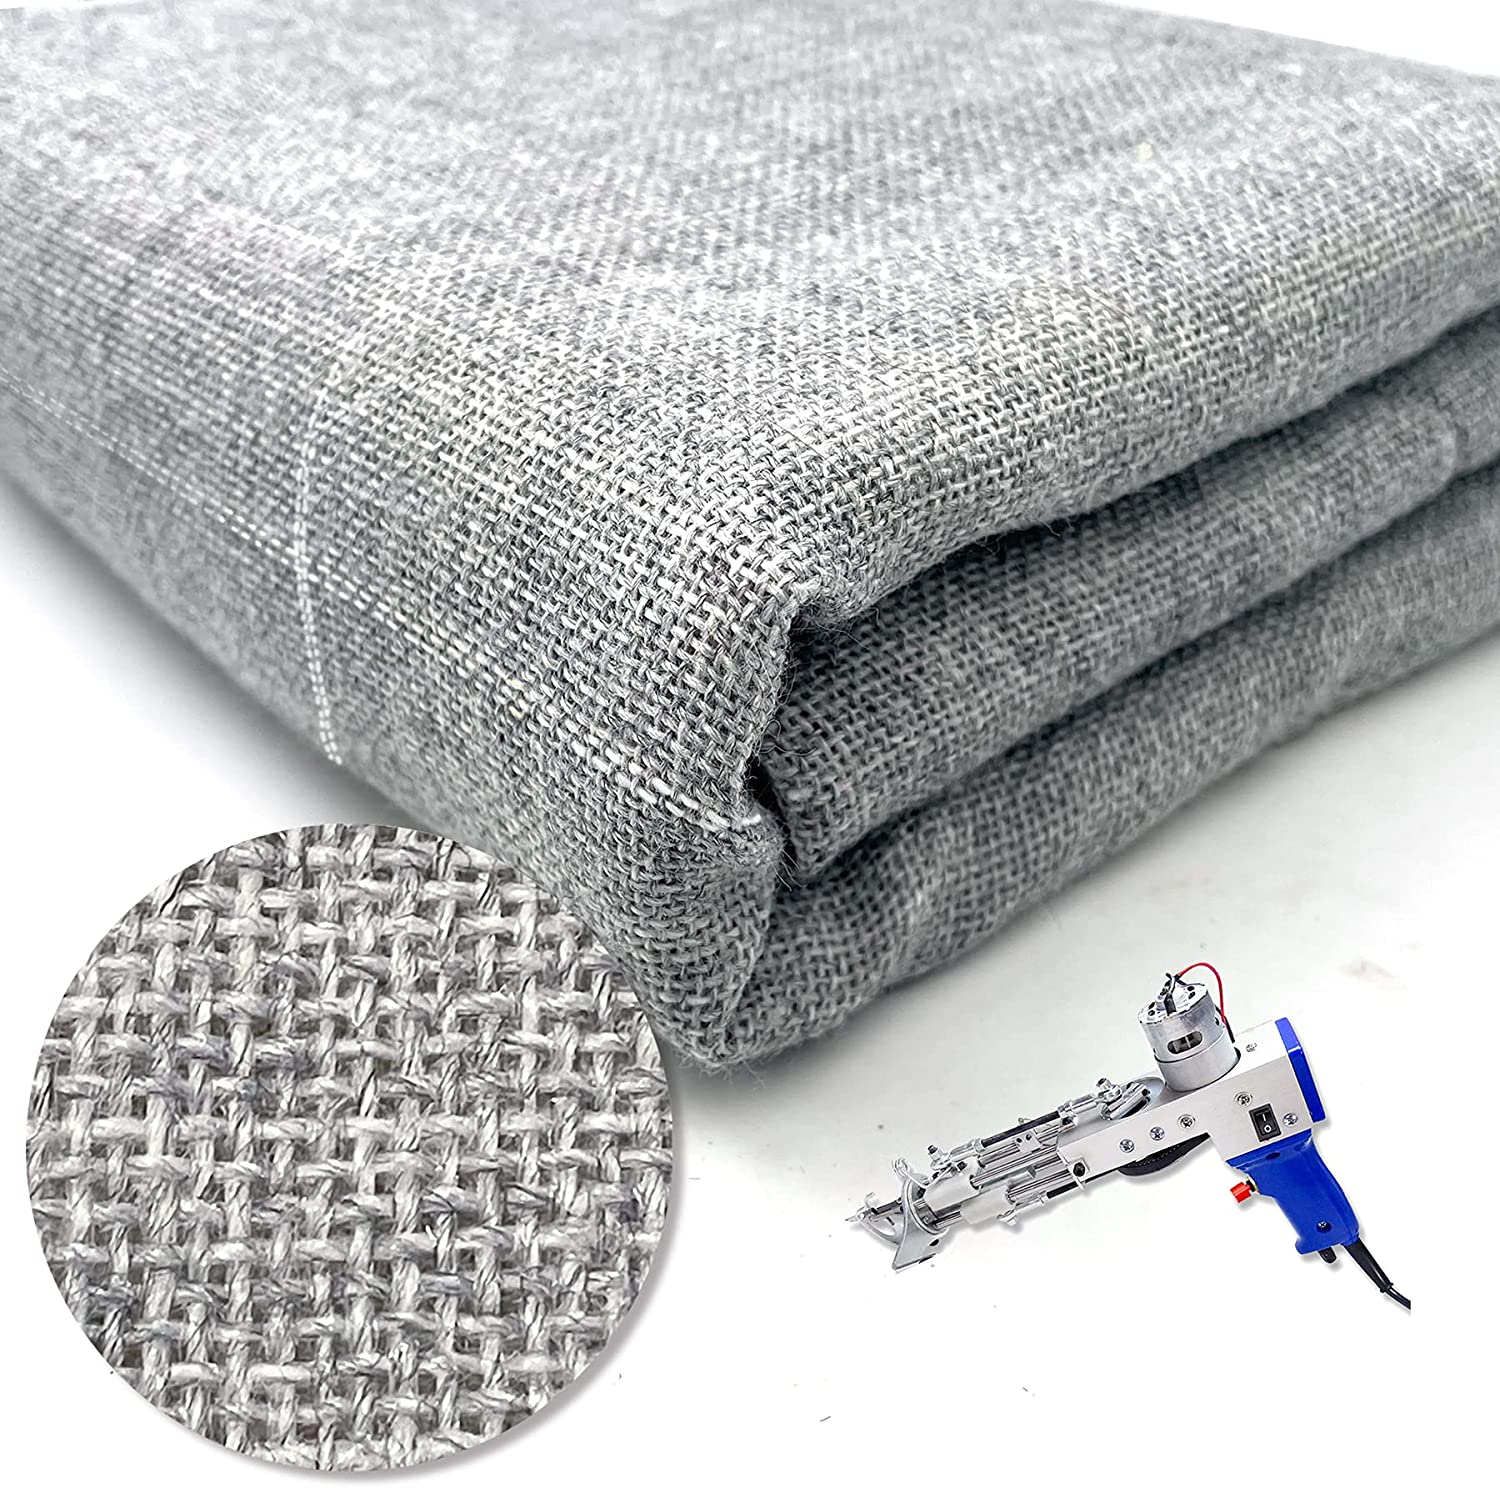 2021 new Primary Tufting Cloth with Marked Lines Manufacturer regenerated product Large F Needlework Size